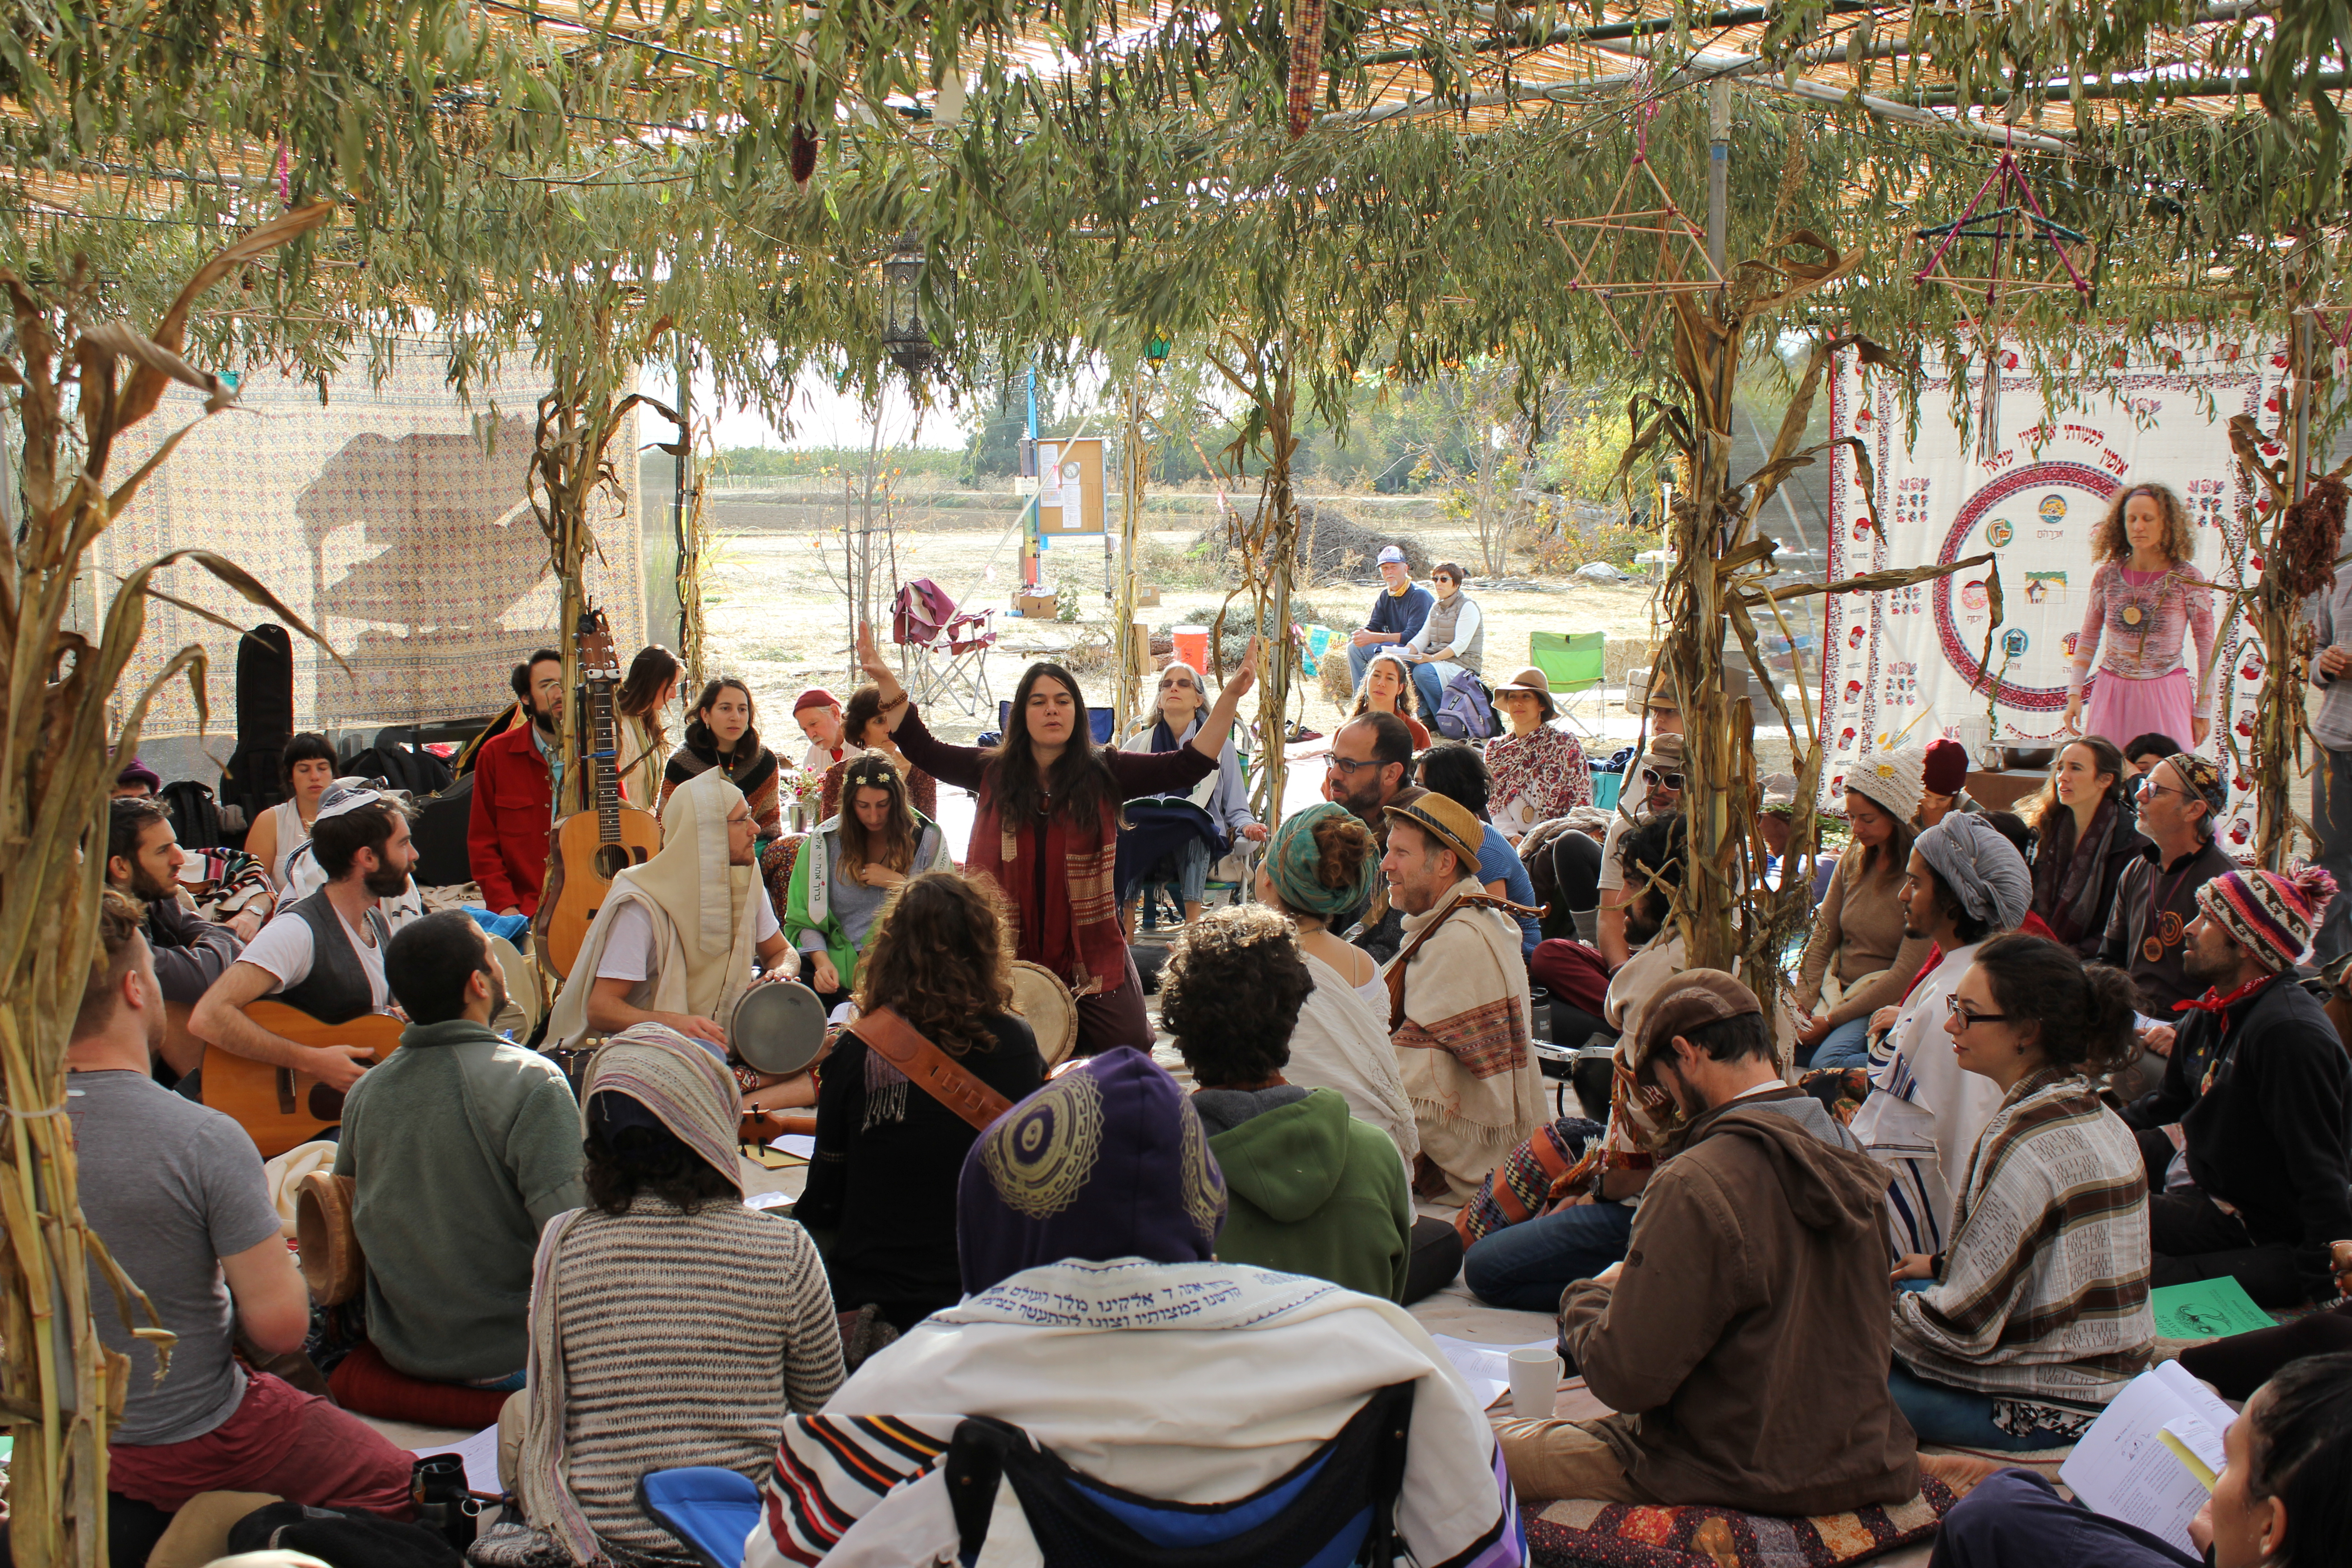 under a very large sukkah, shere raises her hands up as she leads a circle of people in prayer